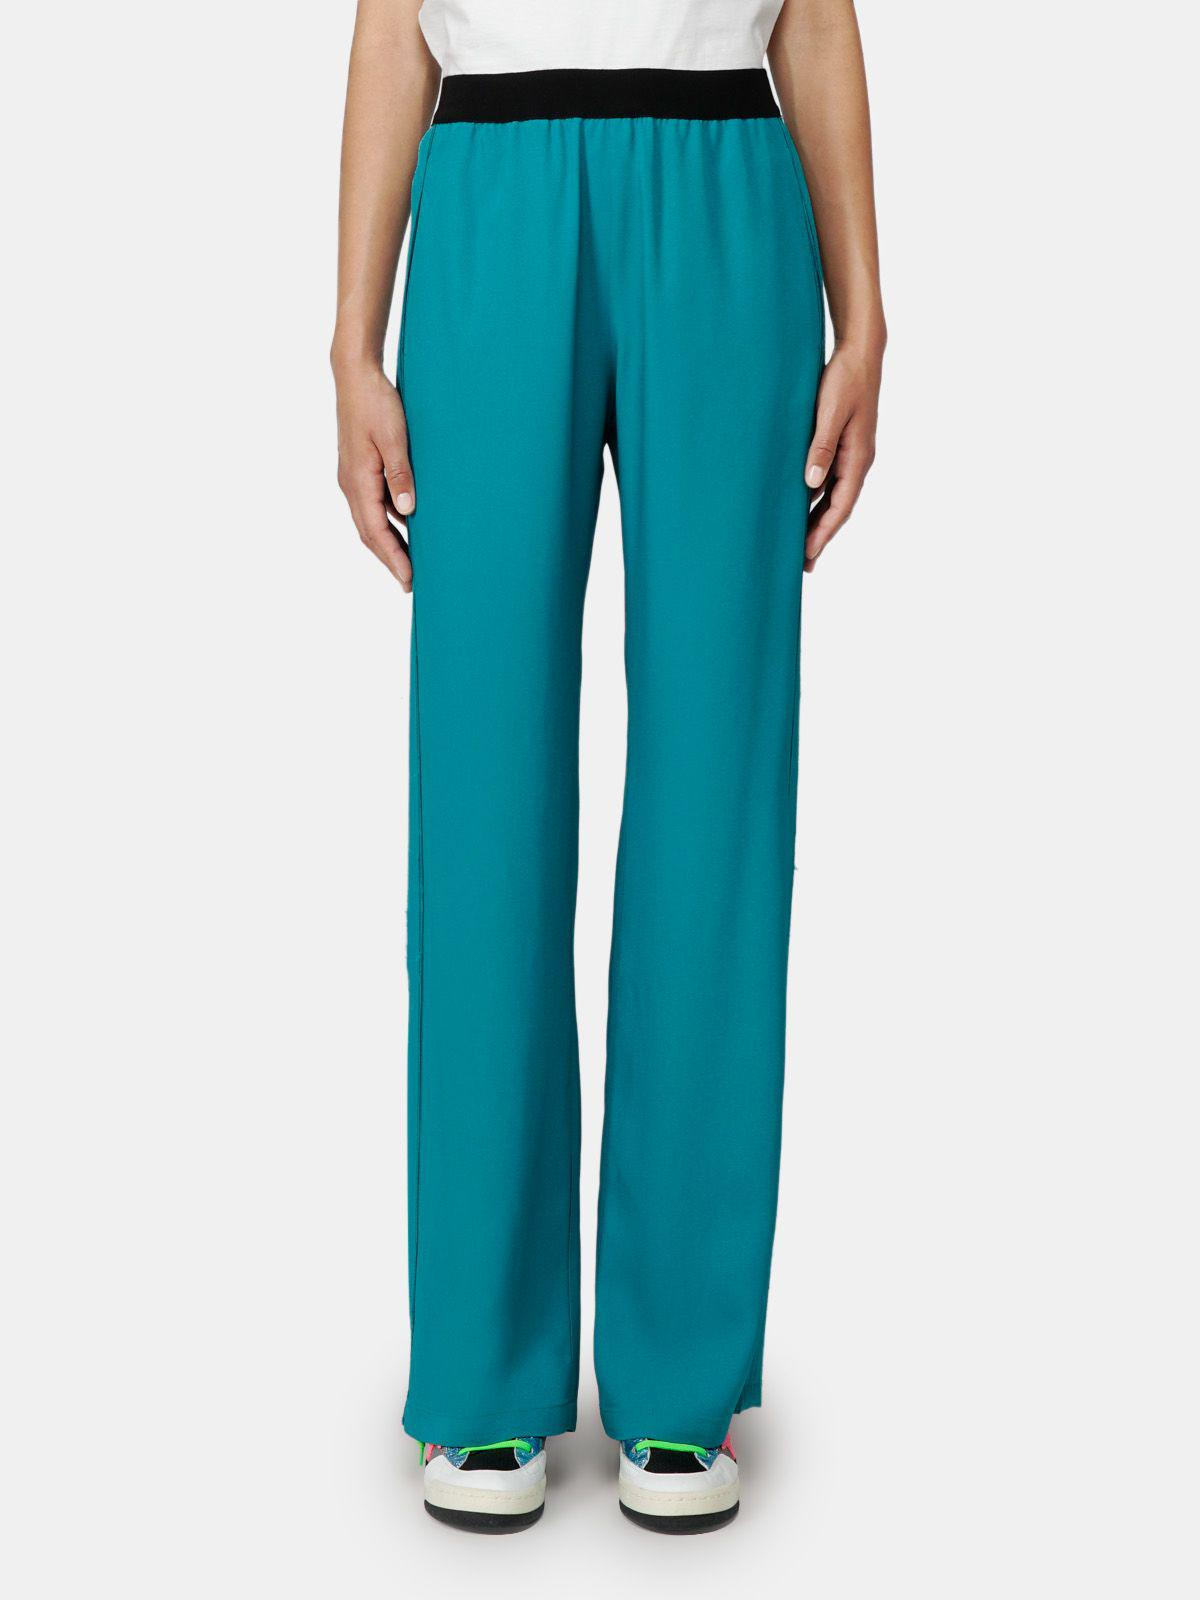 Petrol green Amarilli trousers with a relaxed fit